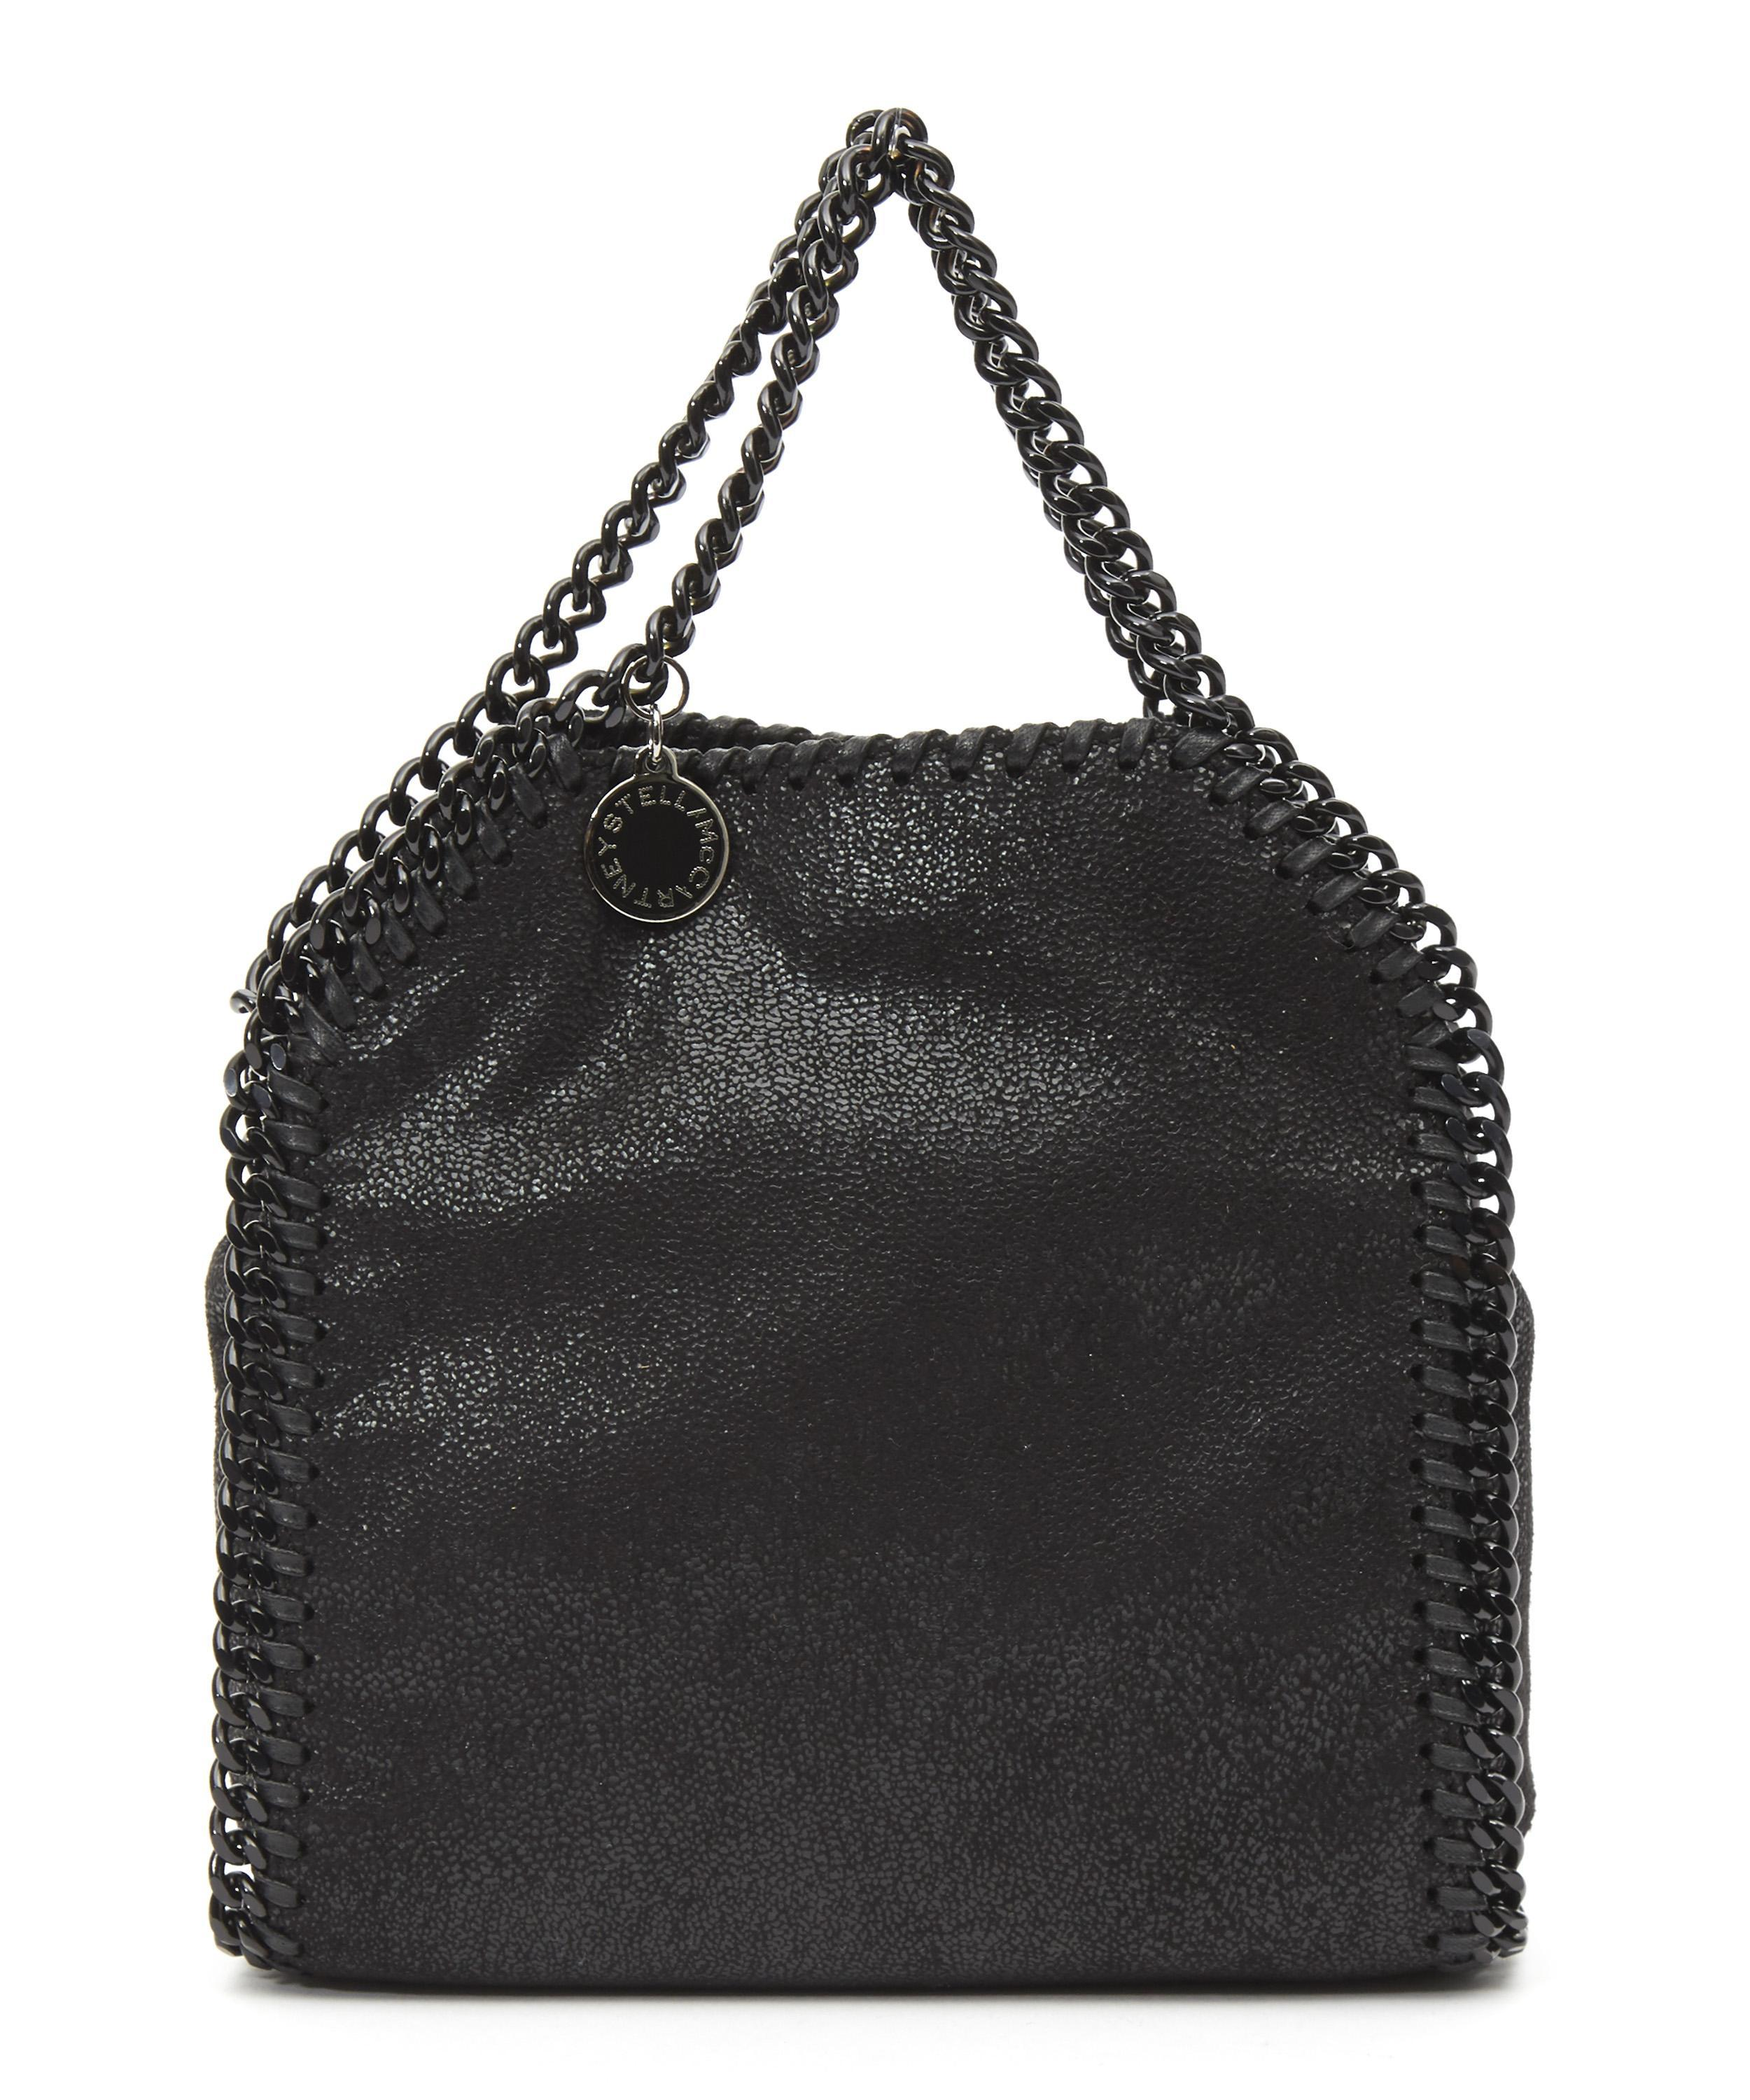 Lyst - Stella Mccartney Tiny Falabella Bag in Black dc0d7644fd6ca